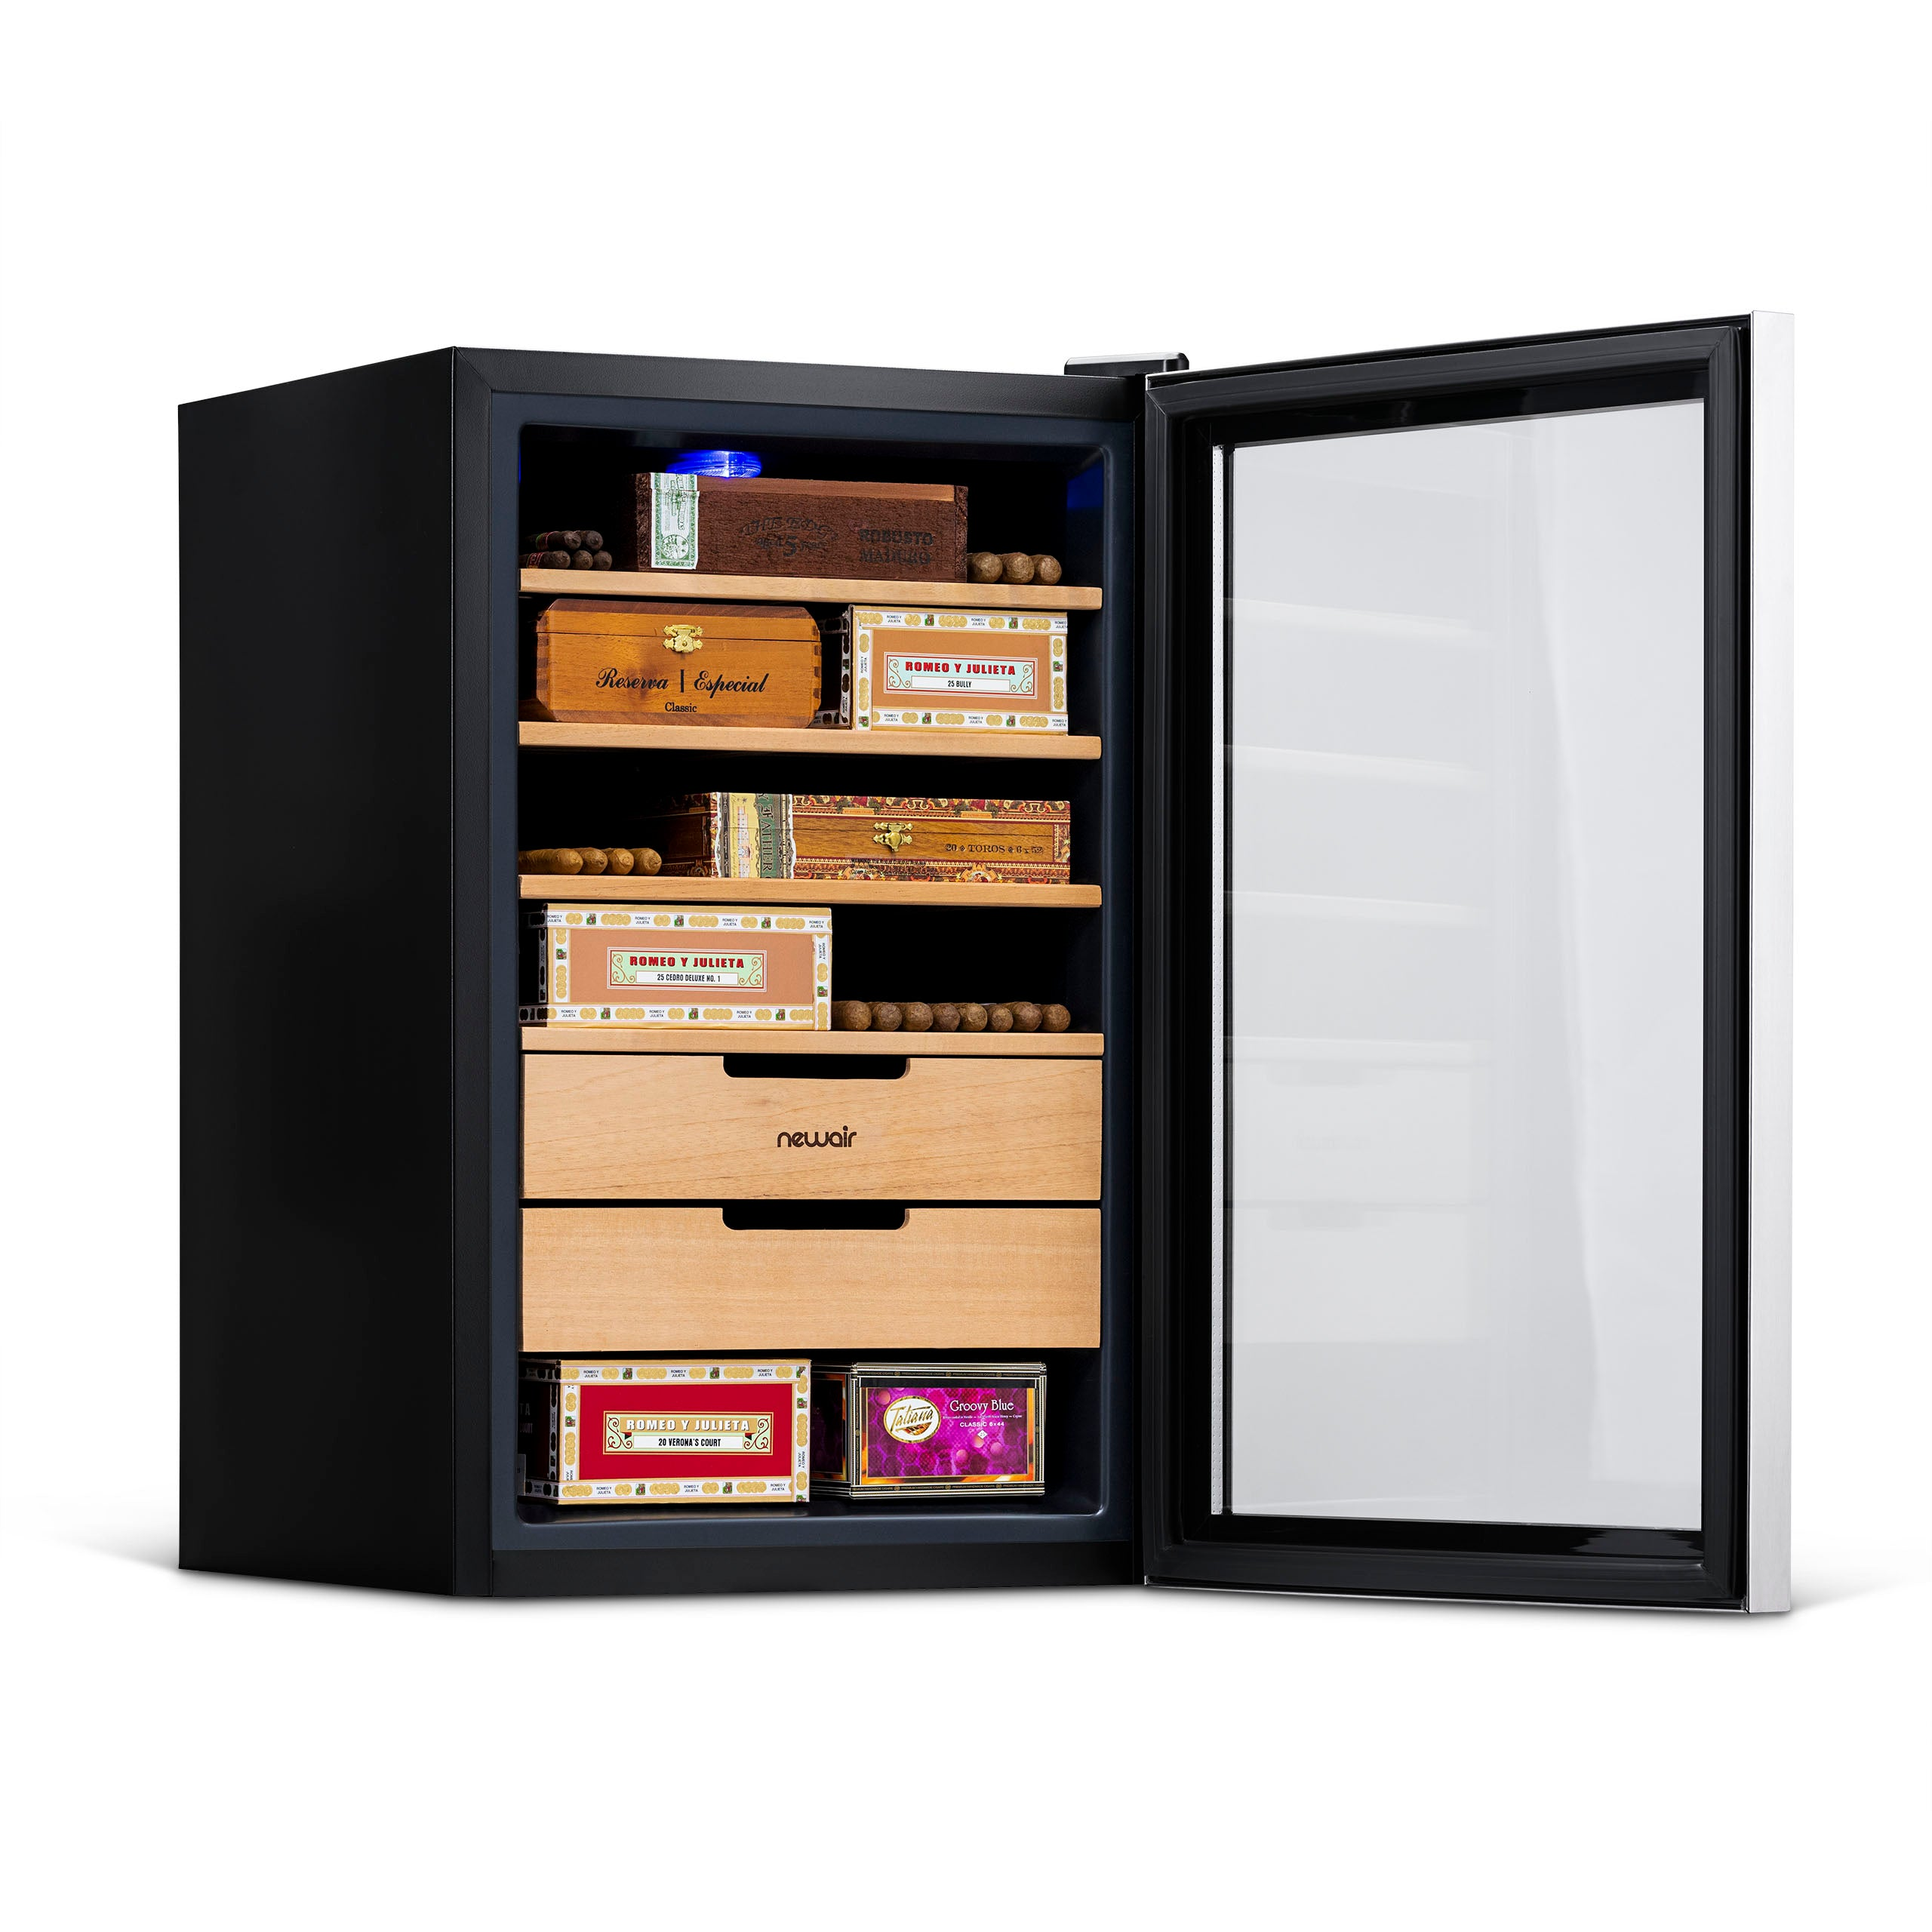 NewAir_CC300_Cigar_Cooler_|_Large_Thermoelectric_Cigar_Humidor